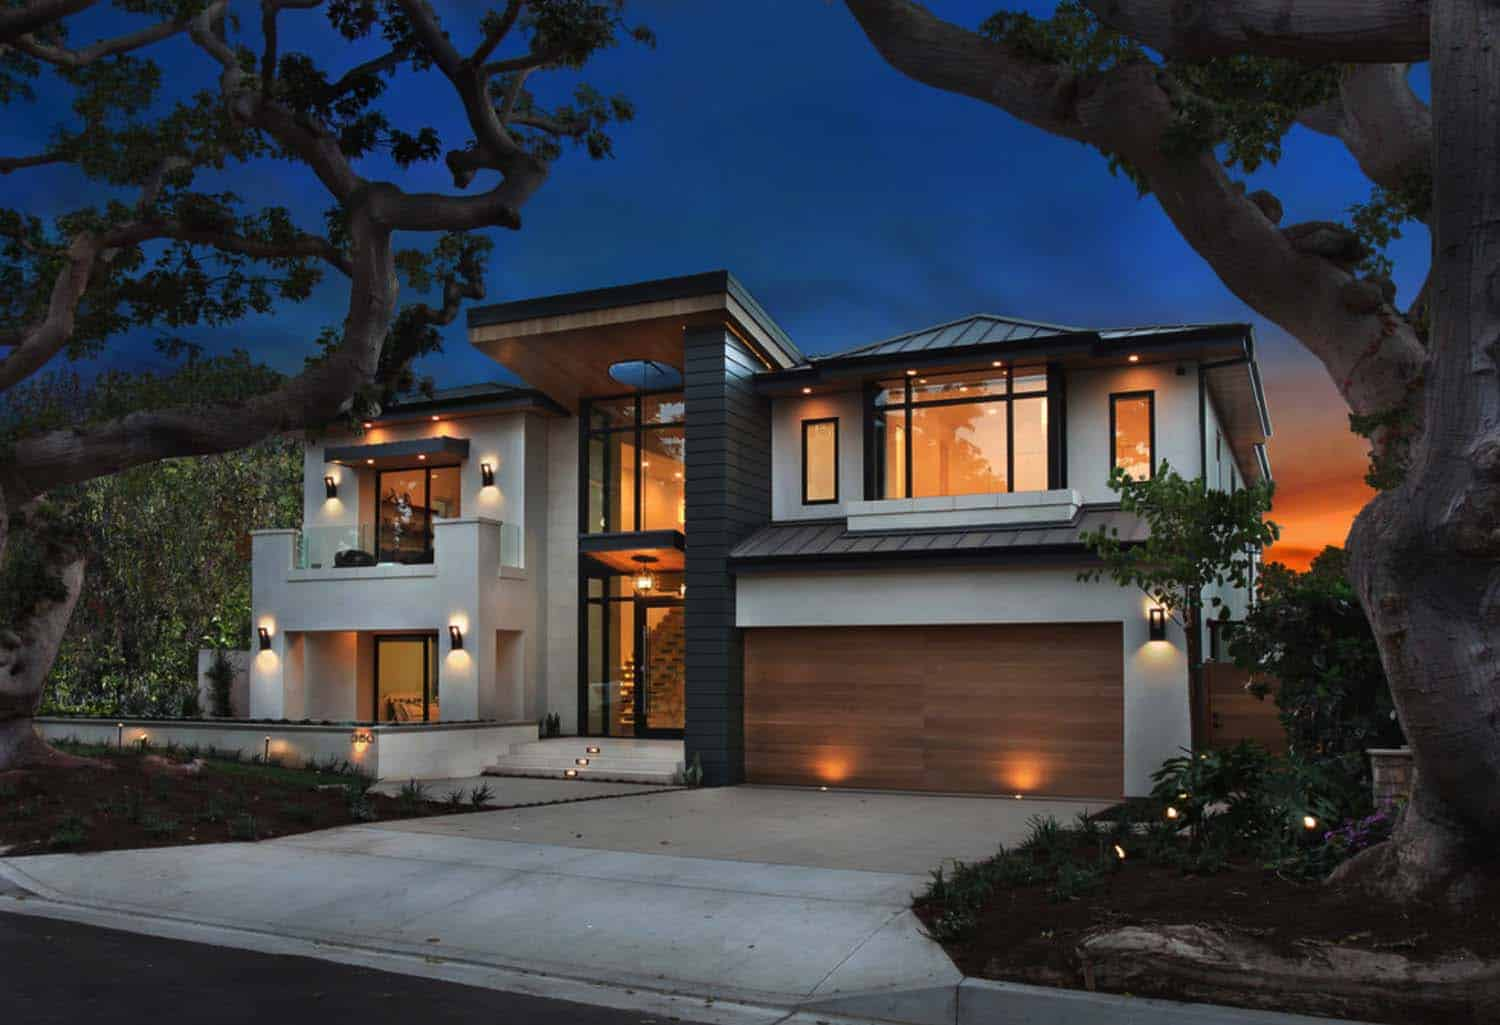 Modern Home Design: An Ultra-modern Home Infused With Warmth In Newport Beach